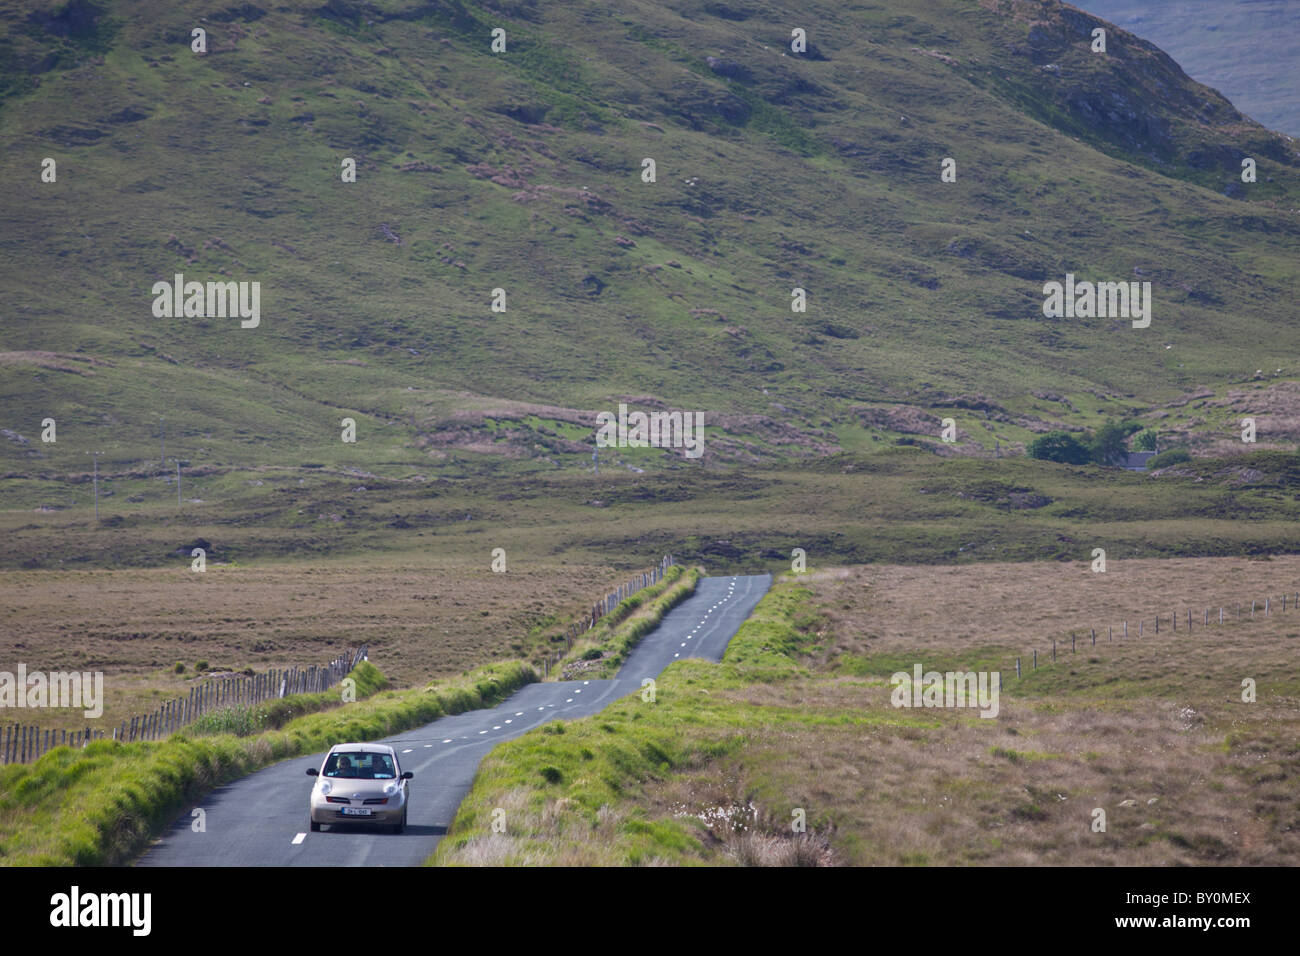 Tourist on Kylemore Pass by the Twelve Bens mountains, Connemara, County Galway, Ireland - Stock Image